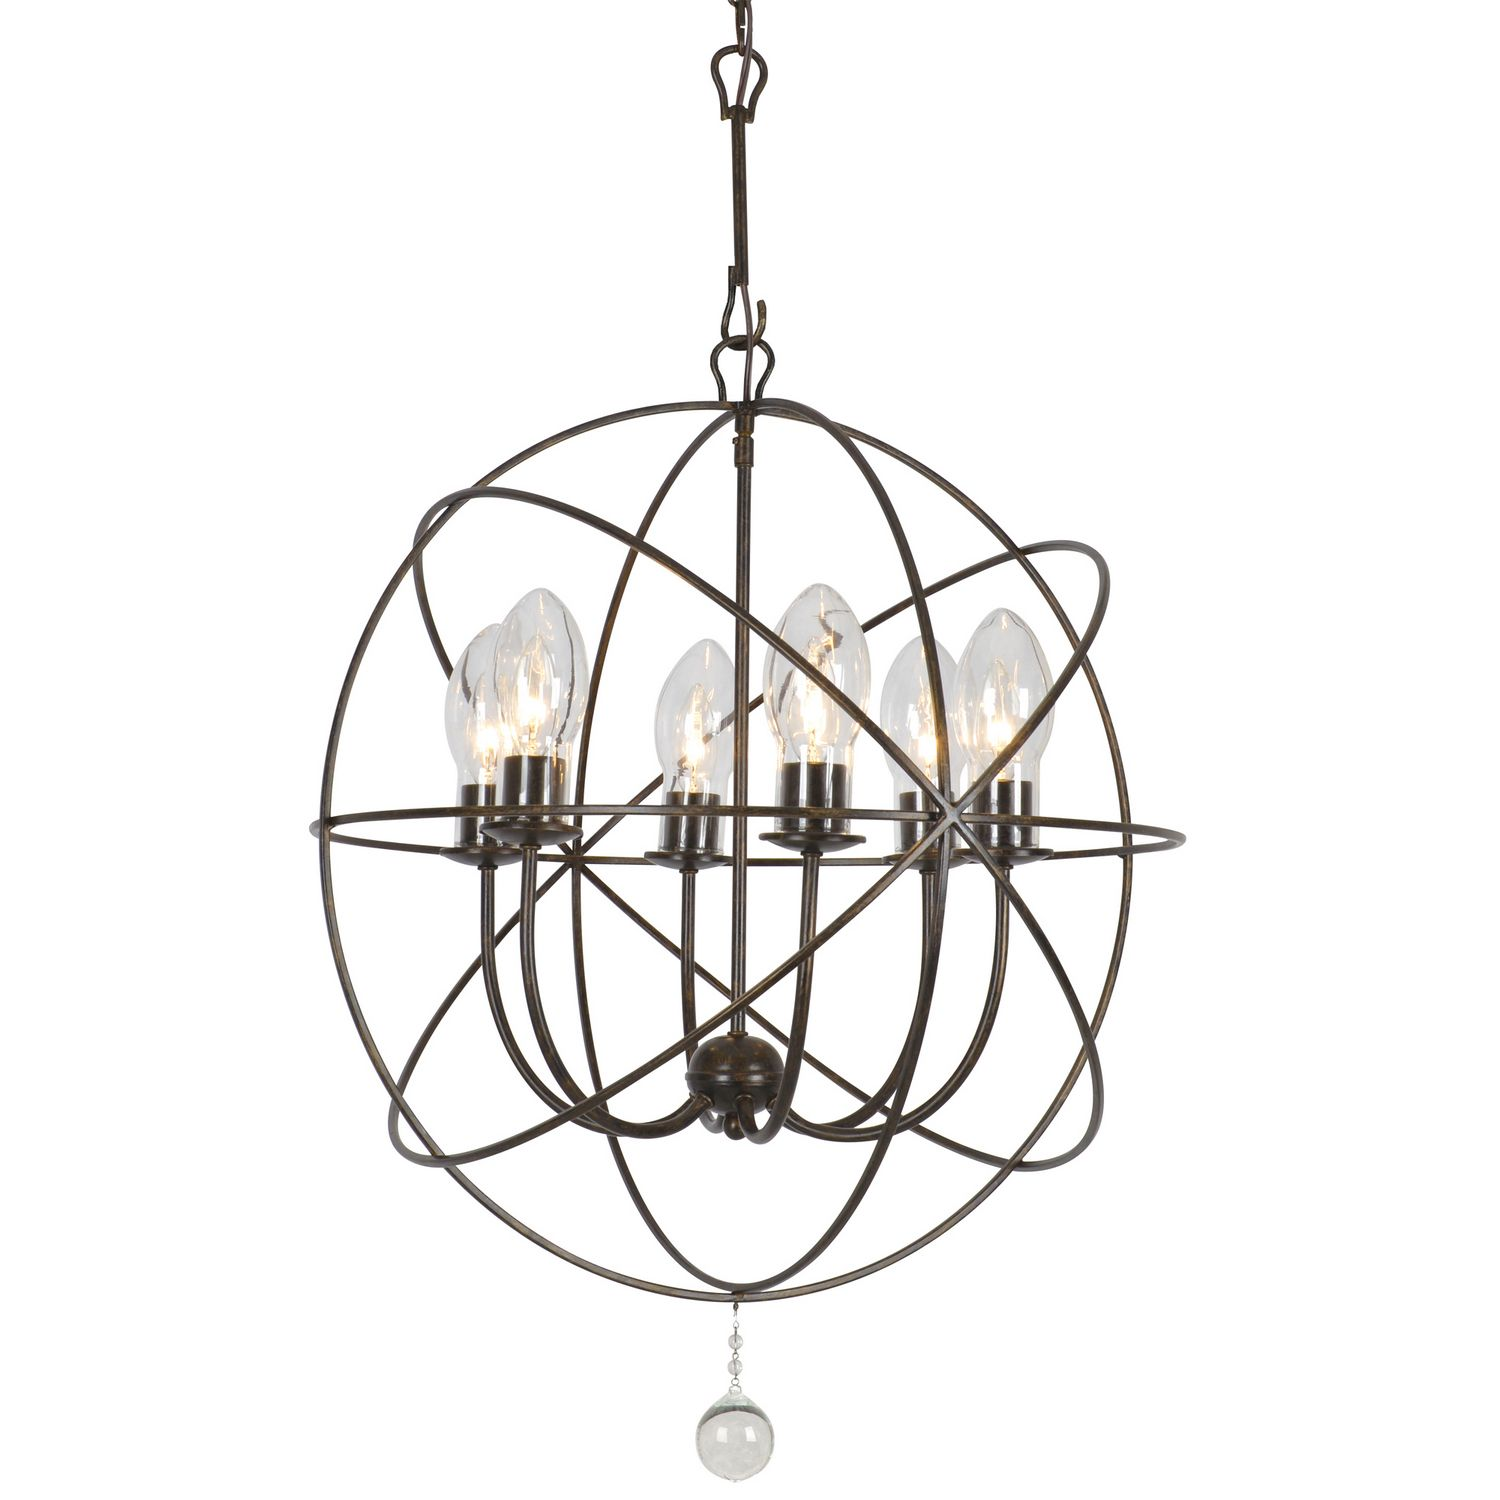 crystorama full fixtures wooden mdf out cardboa company drum the hand cardboard bronze for and large cut english group size solaris crystal wide clear save light globe gold wrought shop iron chandelier lights chandeliers currey stencil with lighting wood of